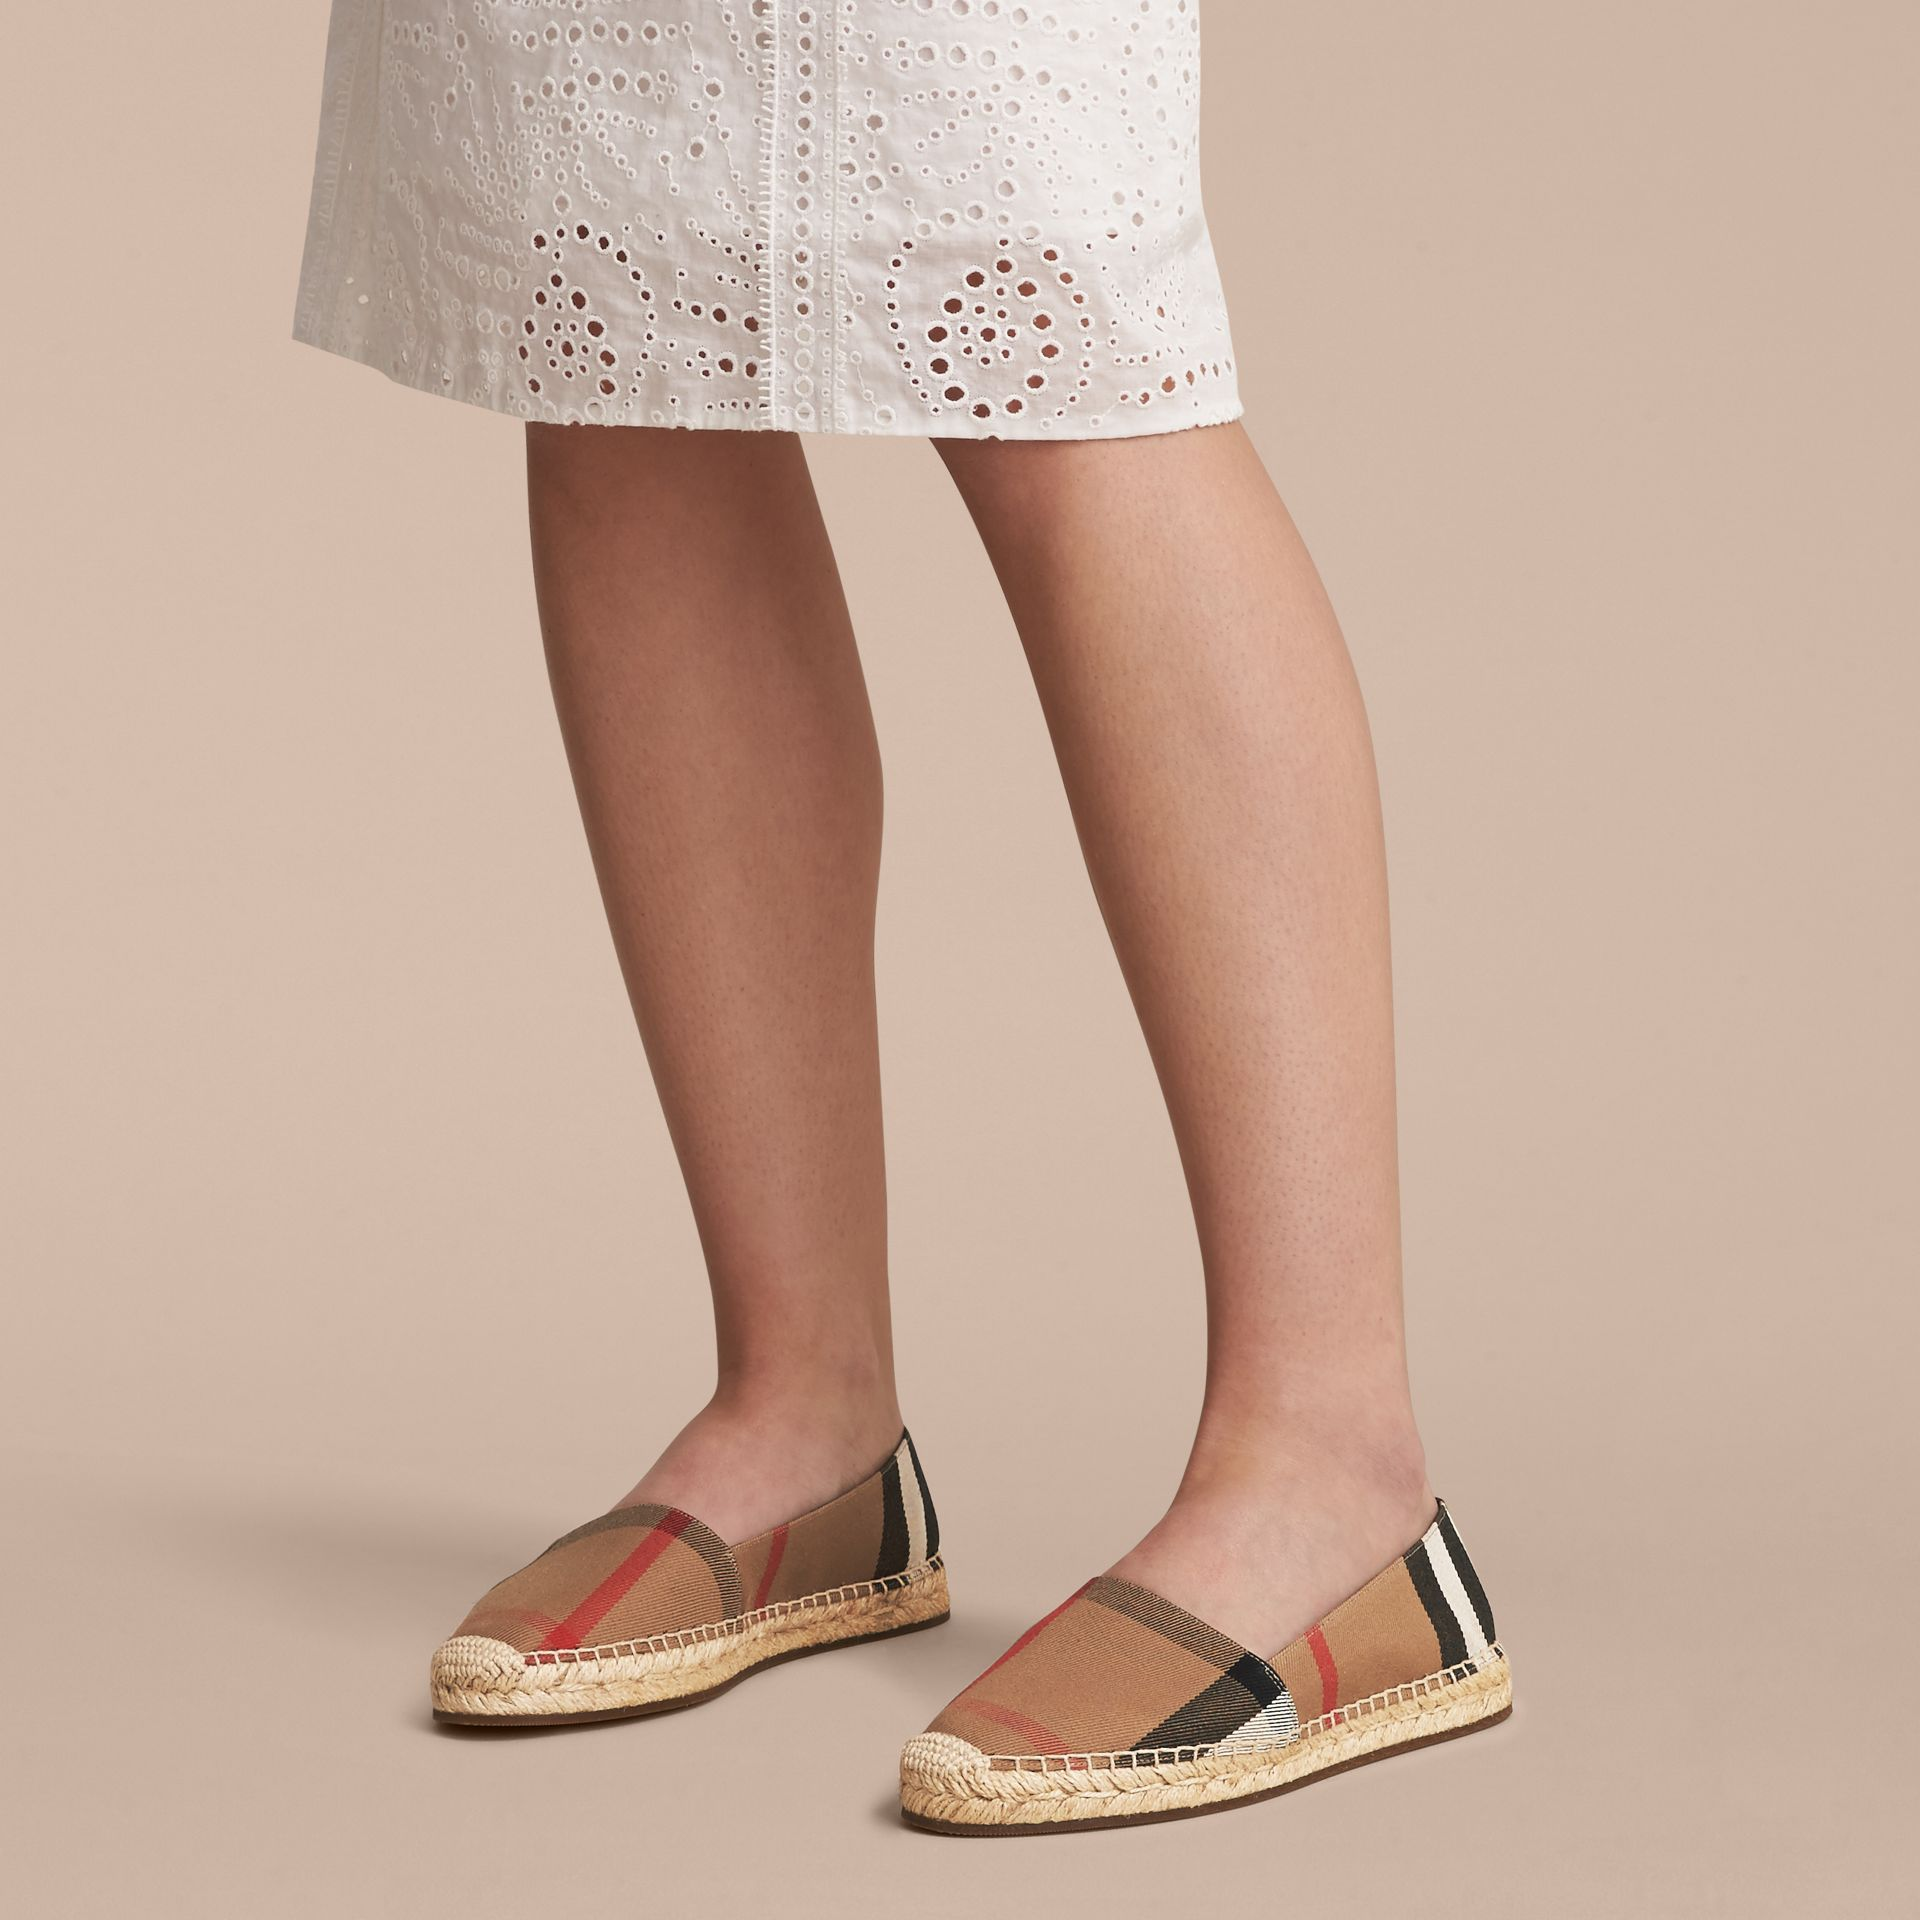 Leather Trim Canvas Check Espadrilles in Classic - Women | Burberry Canada - gallery image 3